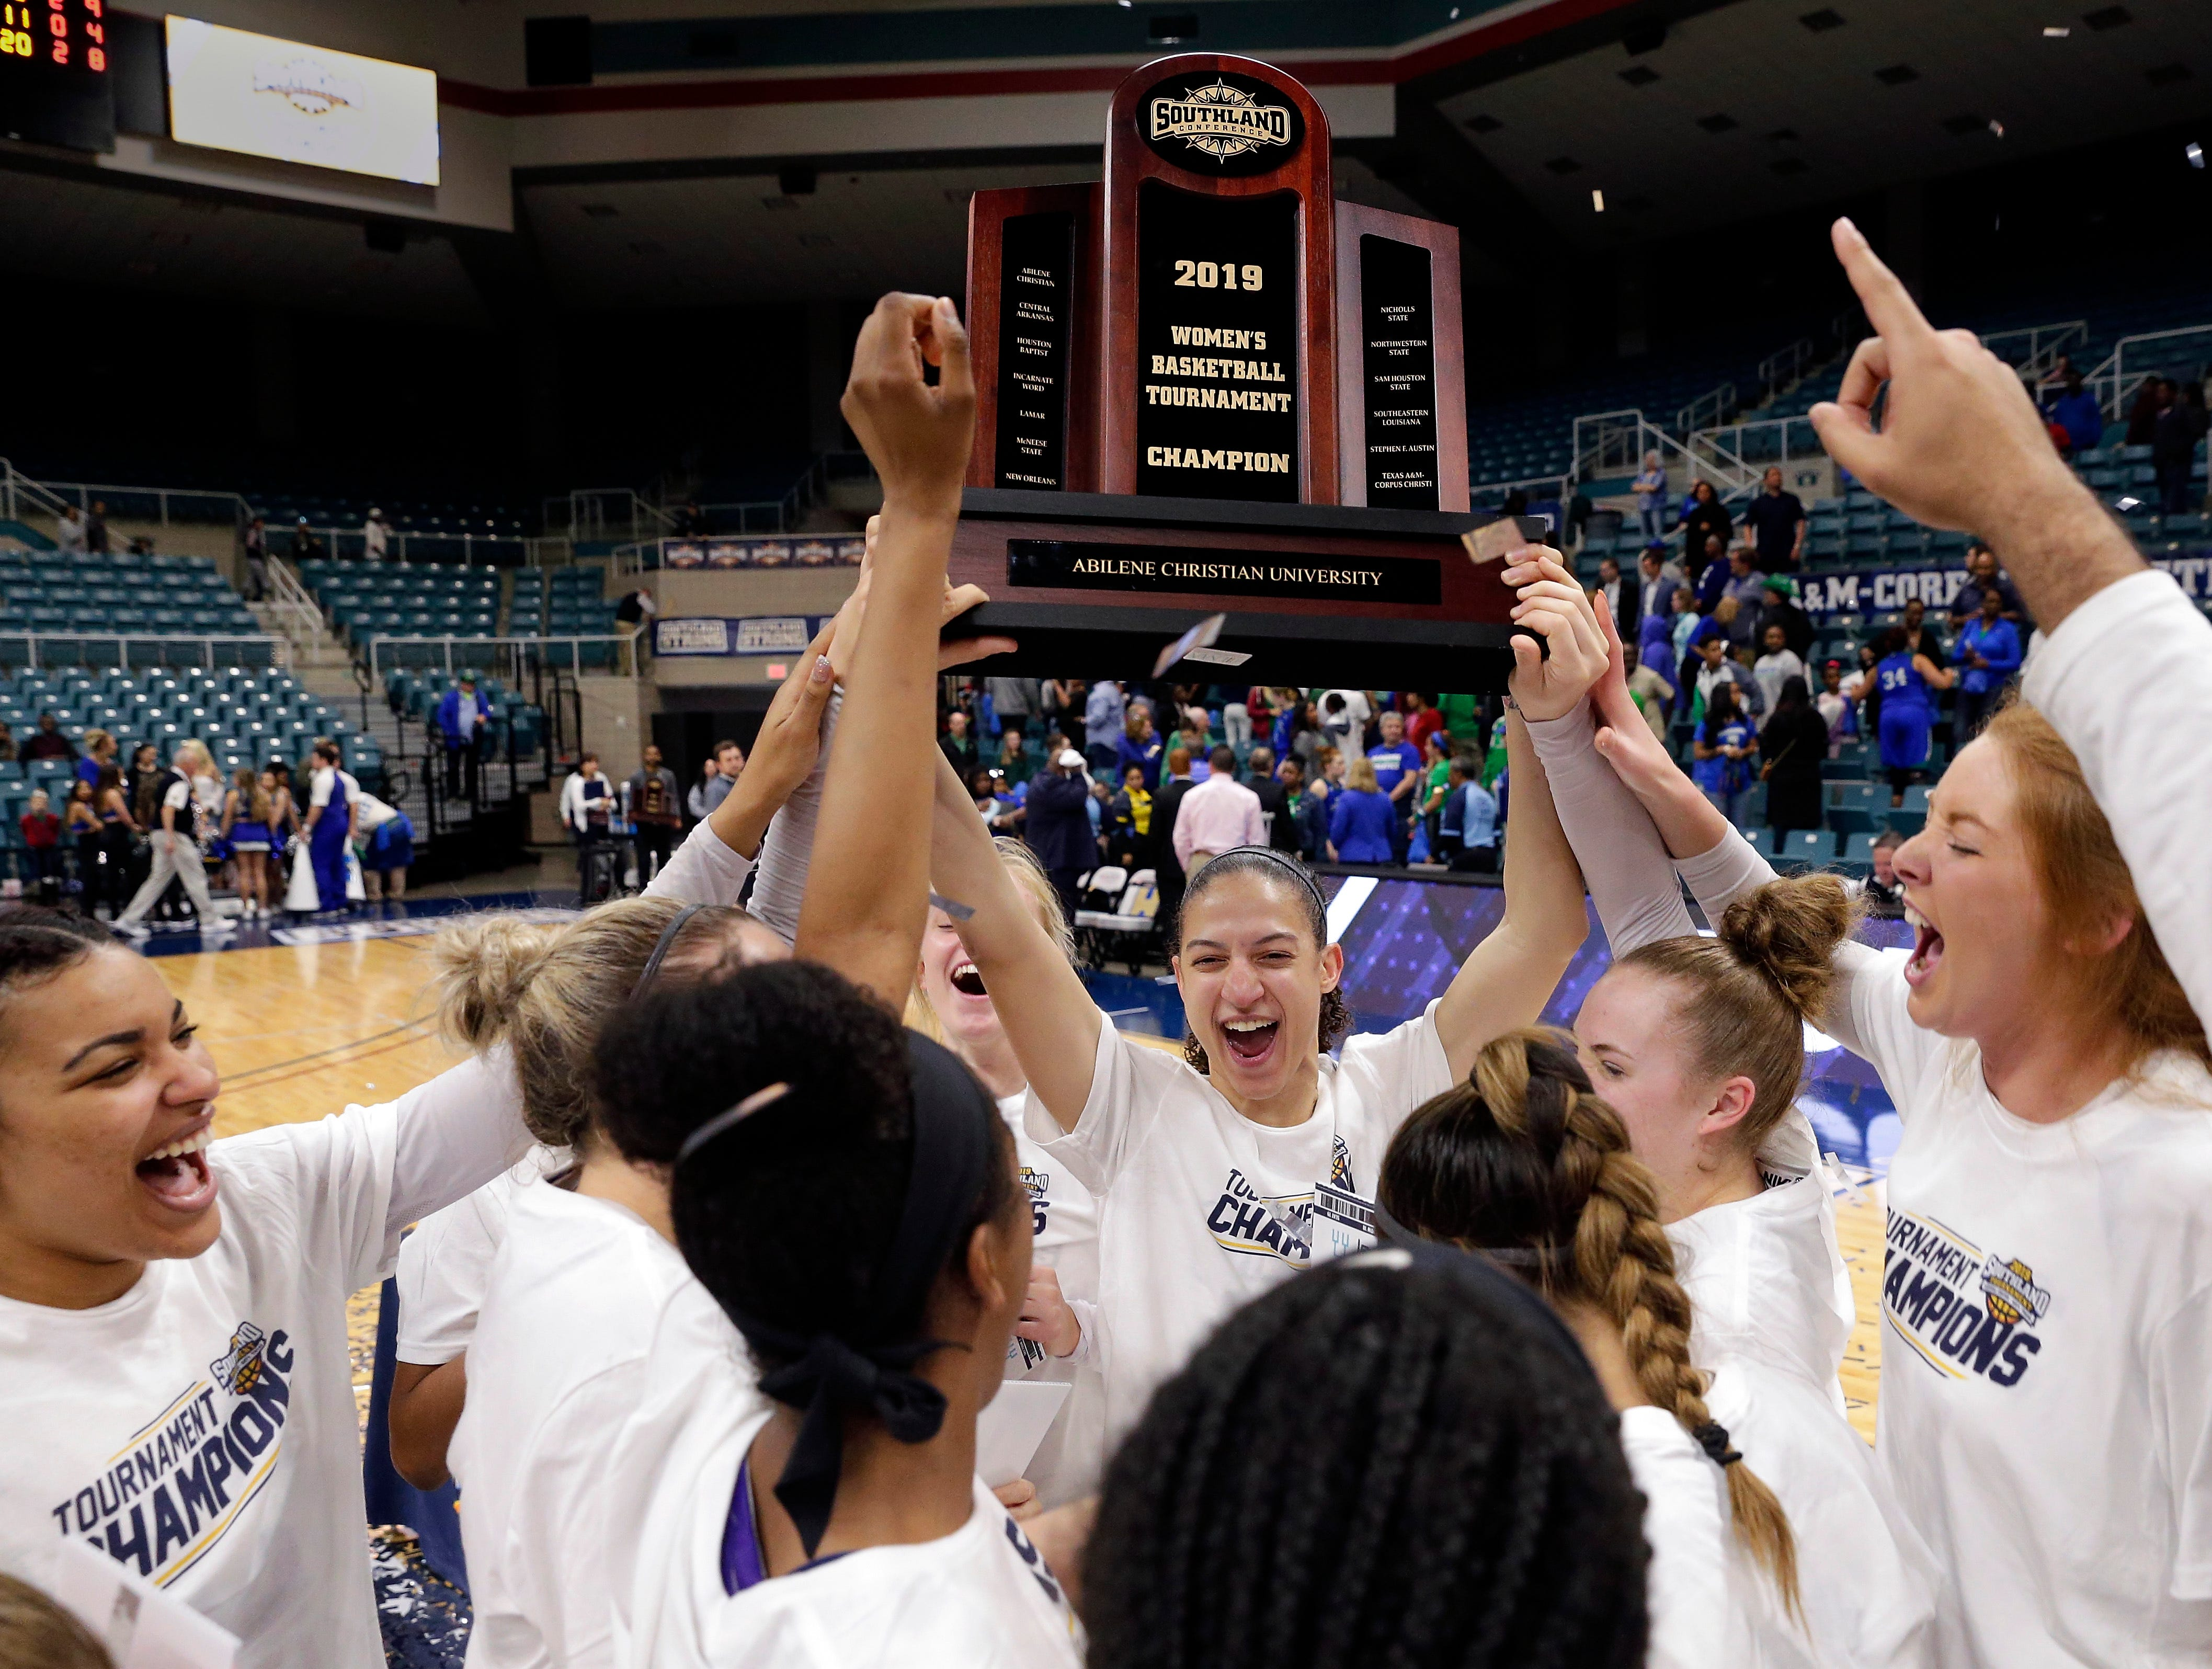 Abilene Christian players hoist the conference championship trophy after defeating Texas A&M-Corpus Christi 69-68 for the Southland Conference women's tournament title Sunday, March 17, 2019, in Katy.